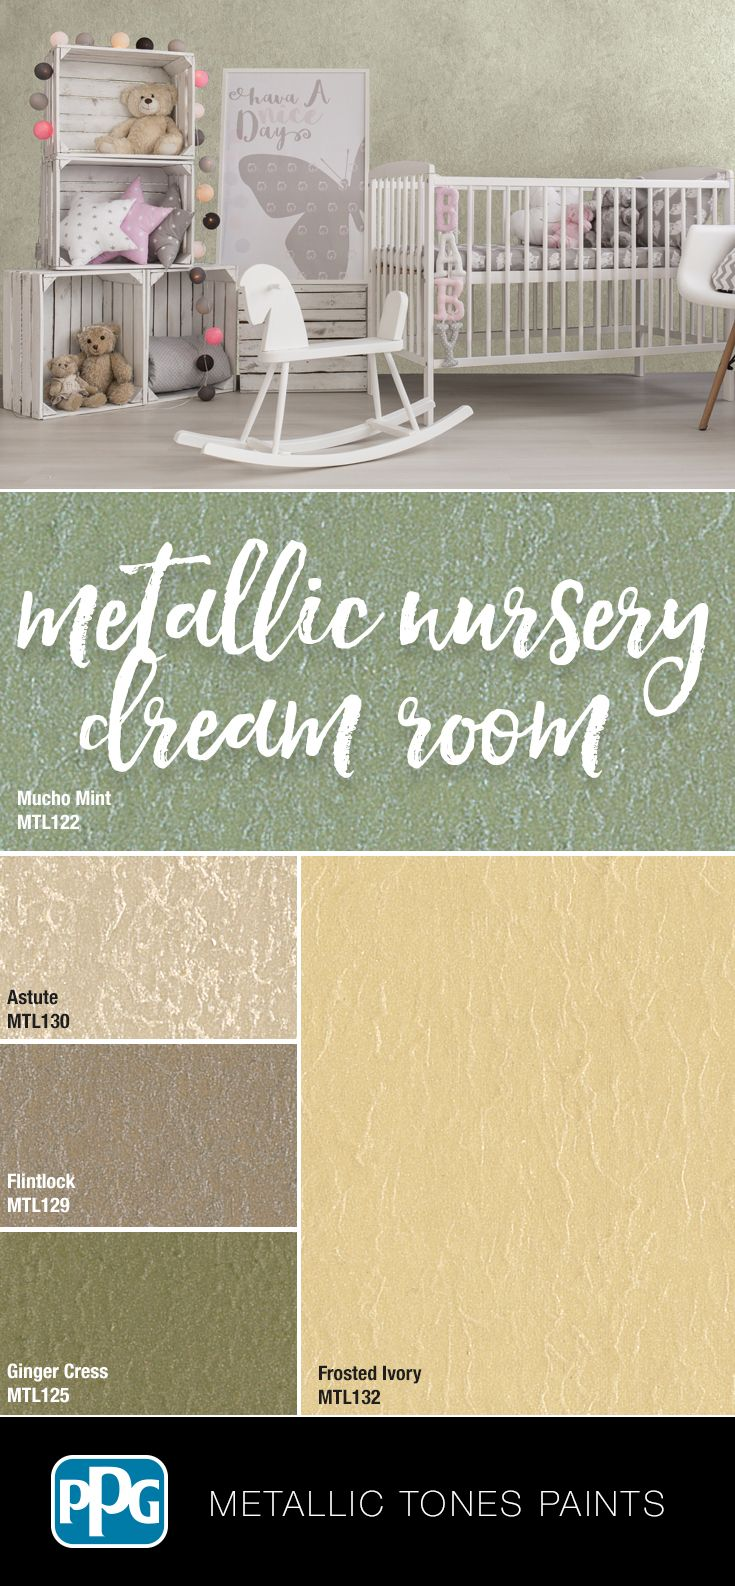 Wanting Sparkle To Your Nursery Room Try Our Metallic Tones Paint Leaving A Sleek Luminous Finish It S Available In Specialty Paints Painting Quality Paint